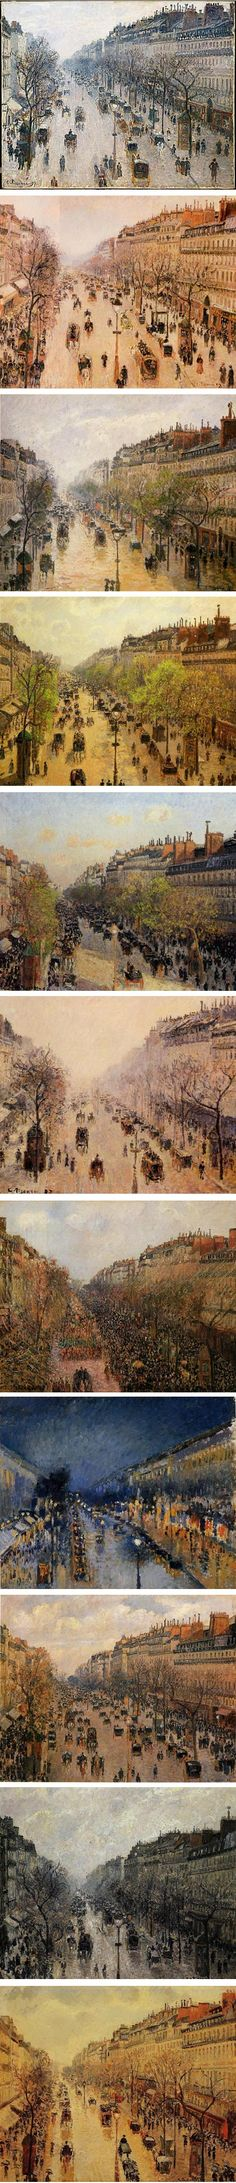 Pissaro's paintings